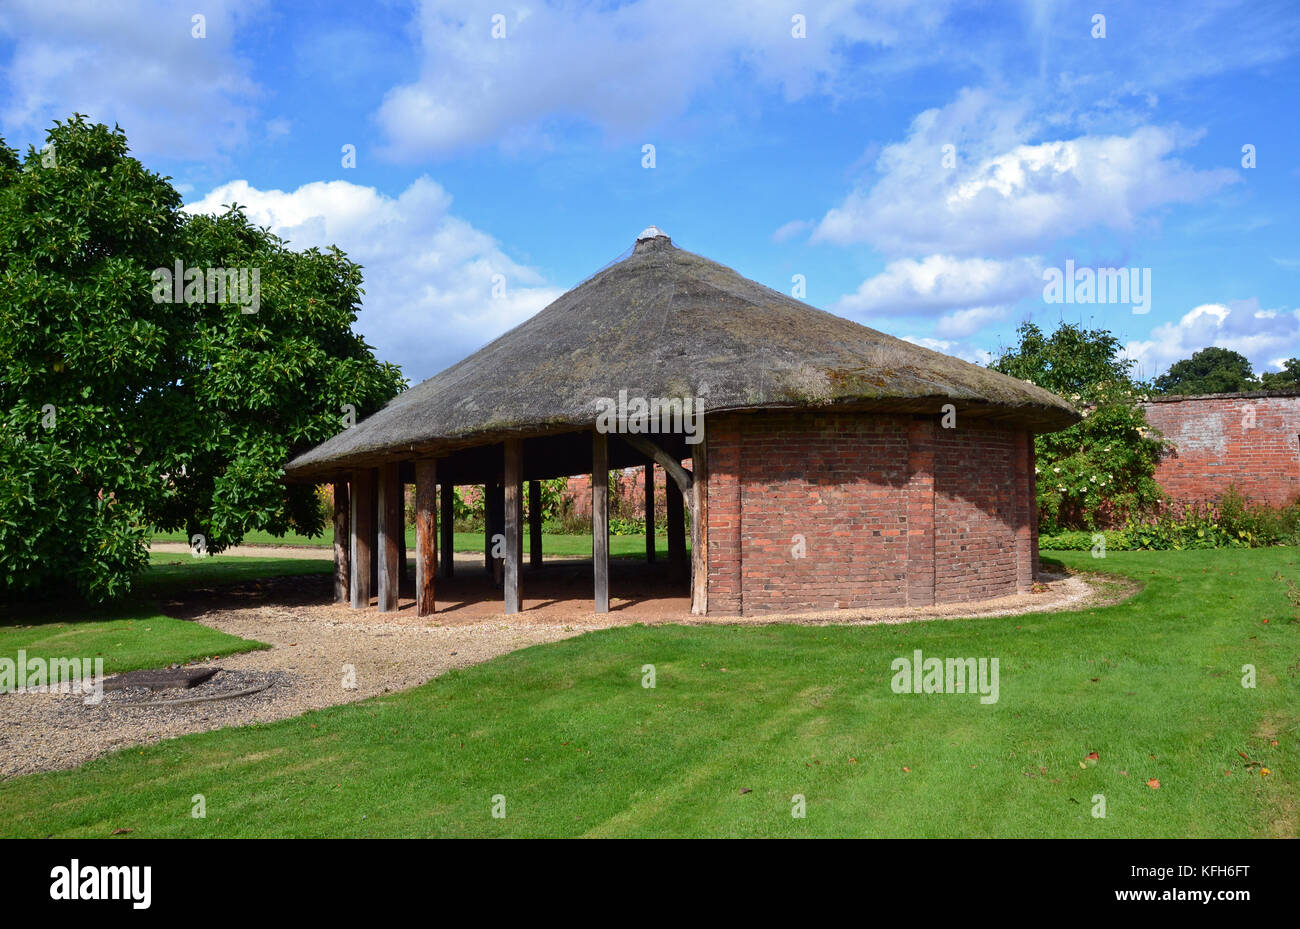 Shelter in the formal garden at Stoneleigh Abbey, Stoneleigh, Warwickshire, UK - Stock Image